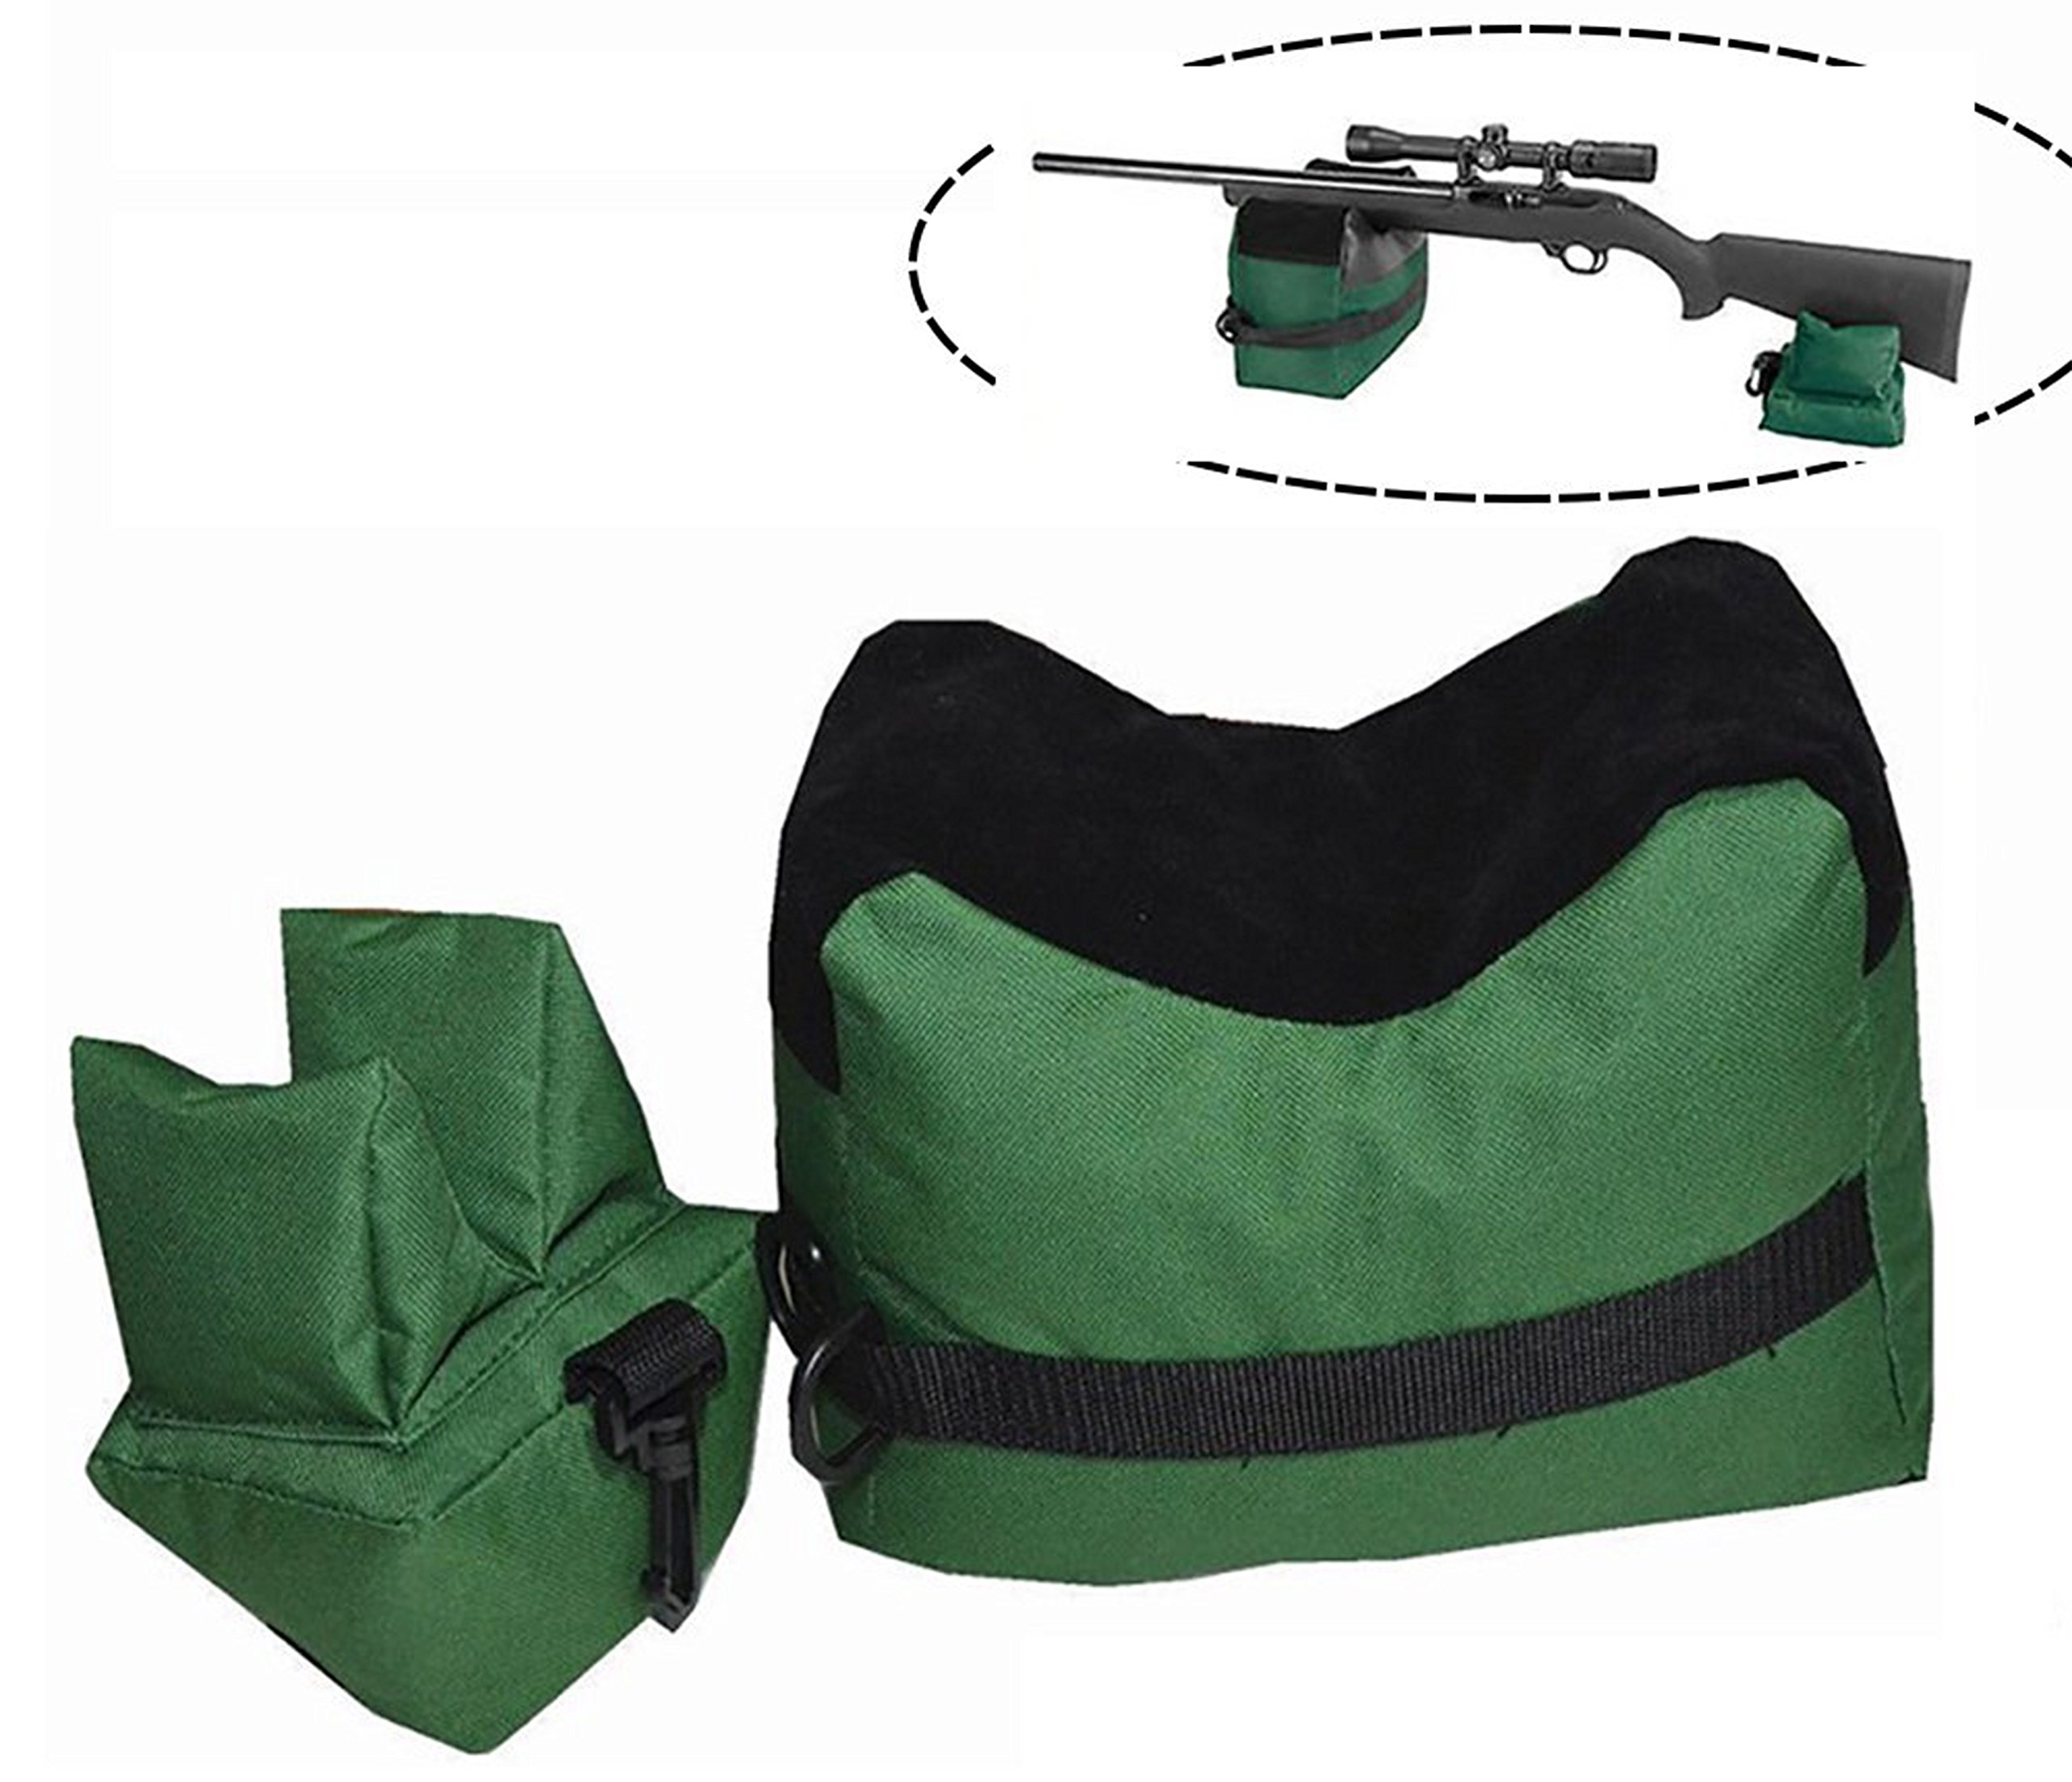 Shooting Rest Bag – Outdoor Rifle Hunting Gun Accessories Target Sports Bench,Front & Rear Bags For Shooter Hunter,Unfilled,Green